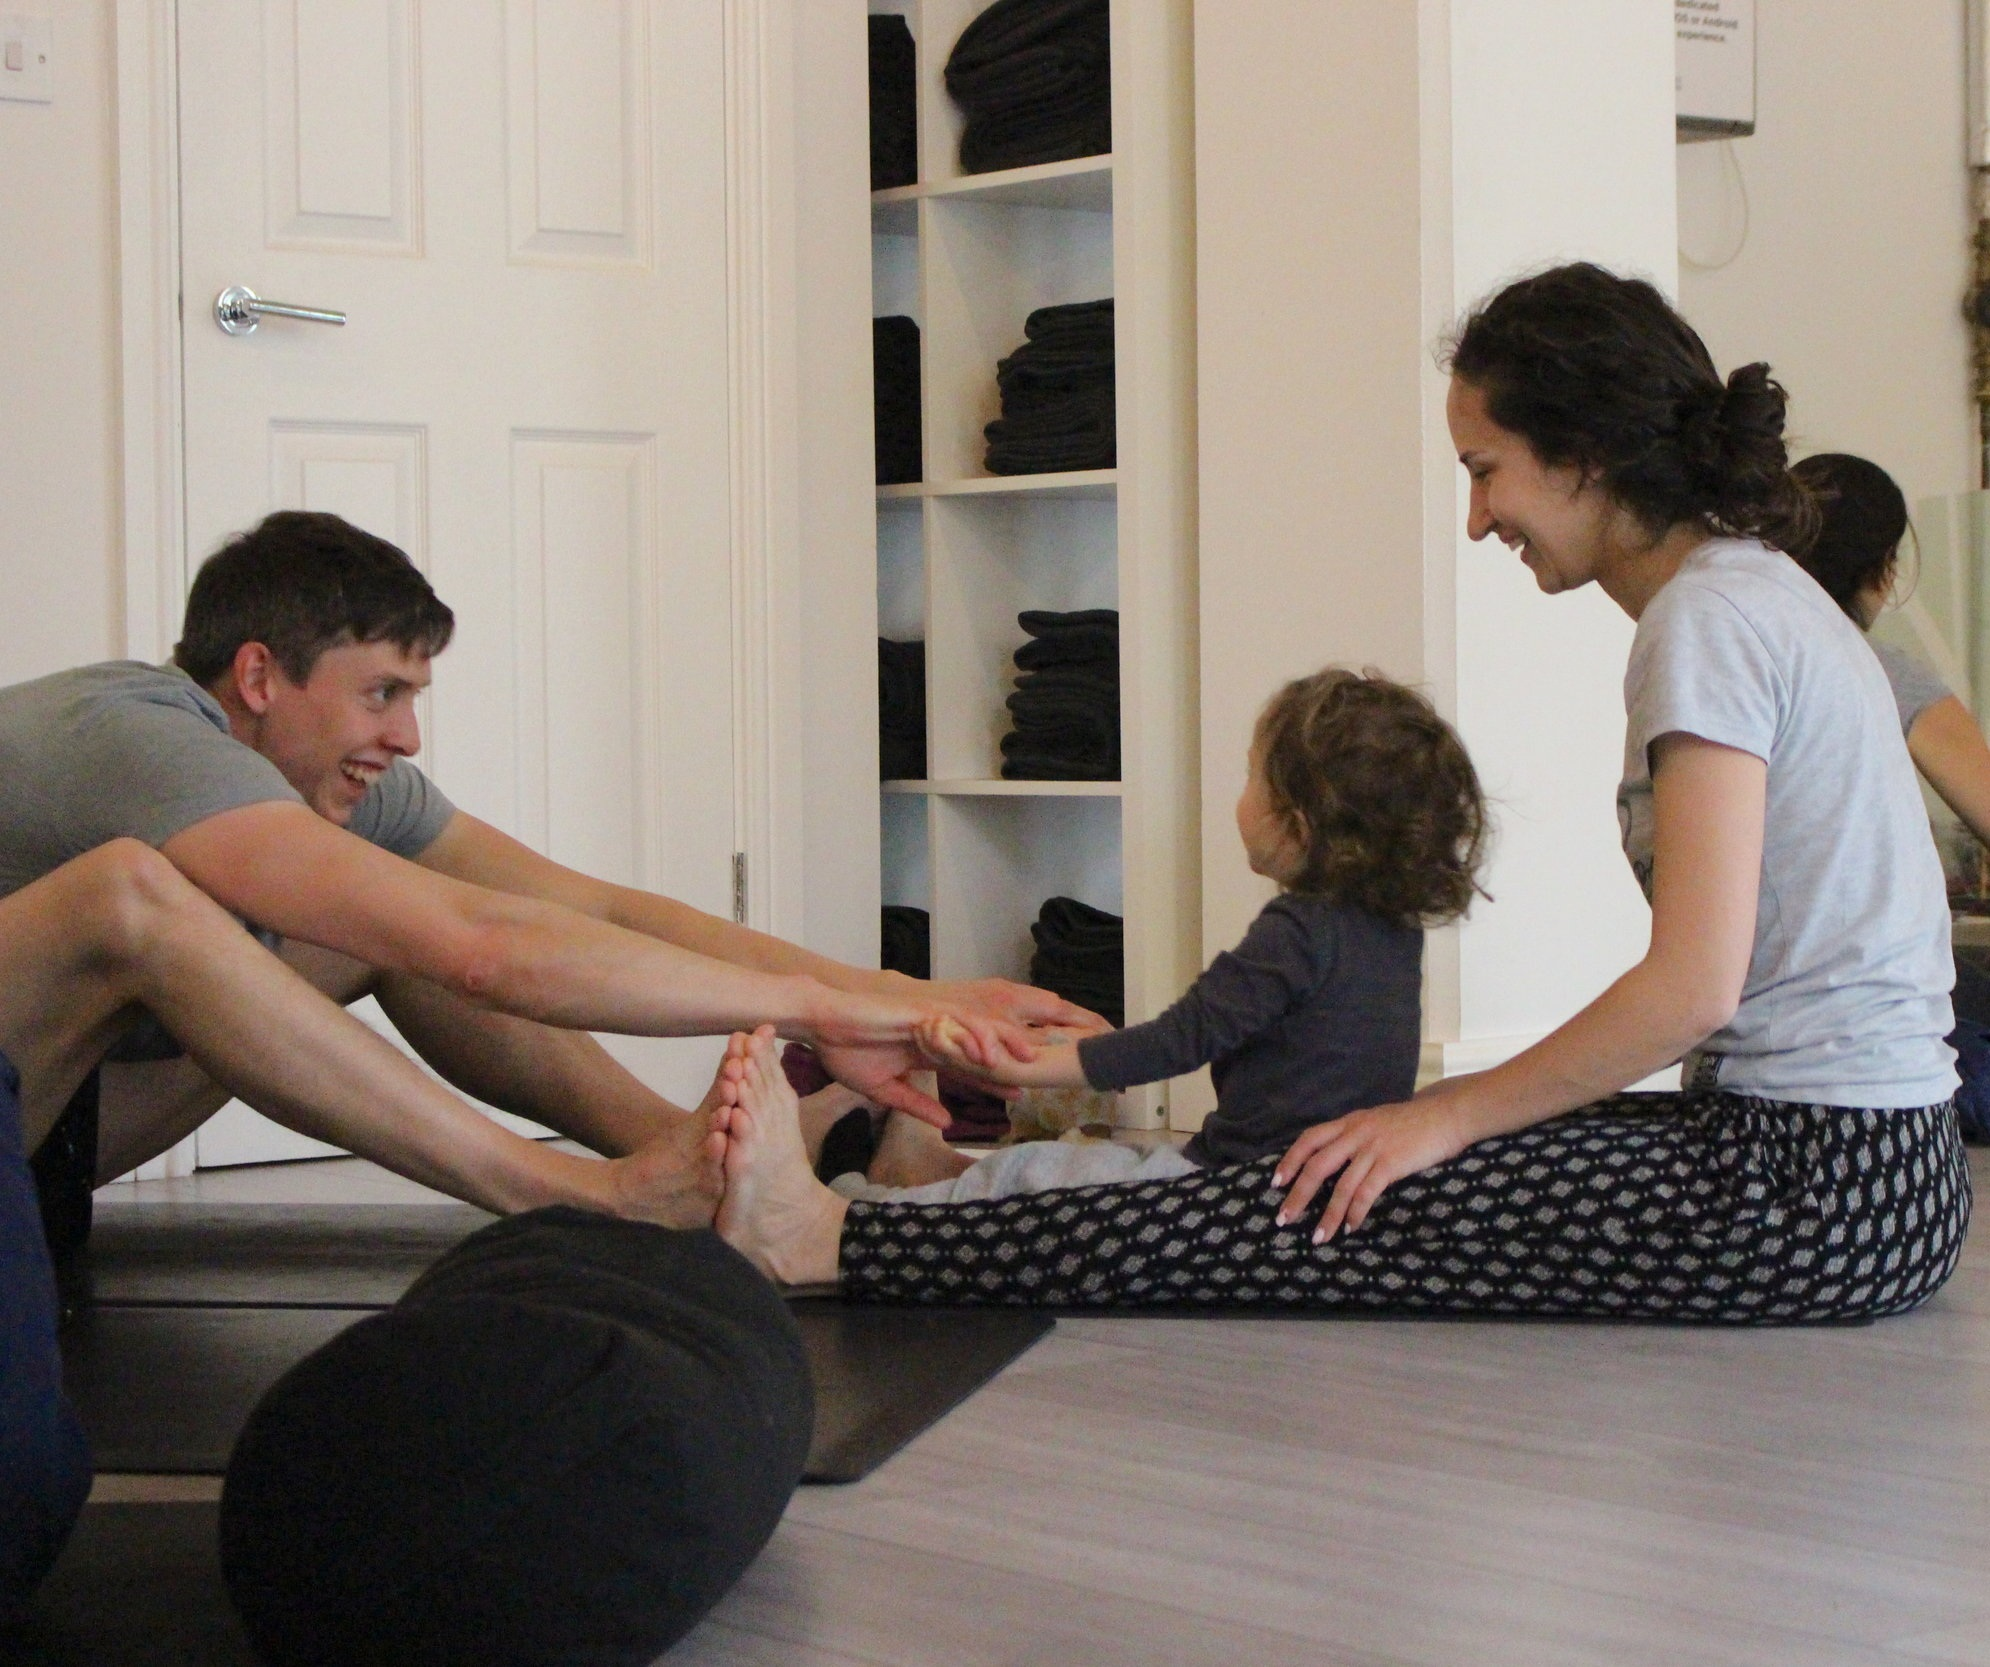 London Family Yoga: MoreYoga Surrey Quays with Jen Armstrong (photo by Dana Dyksterhuis)